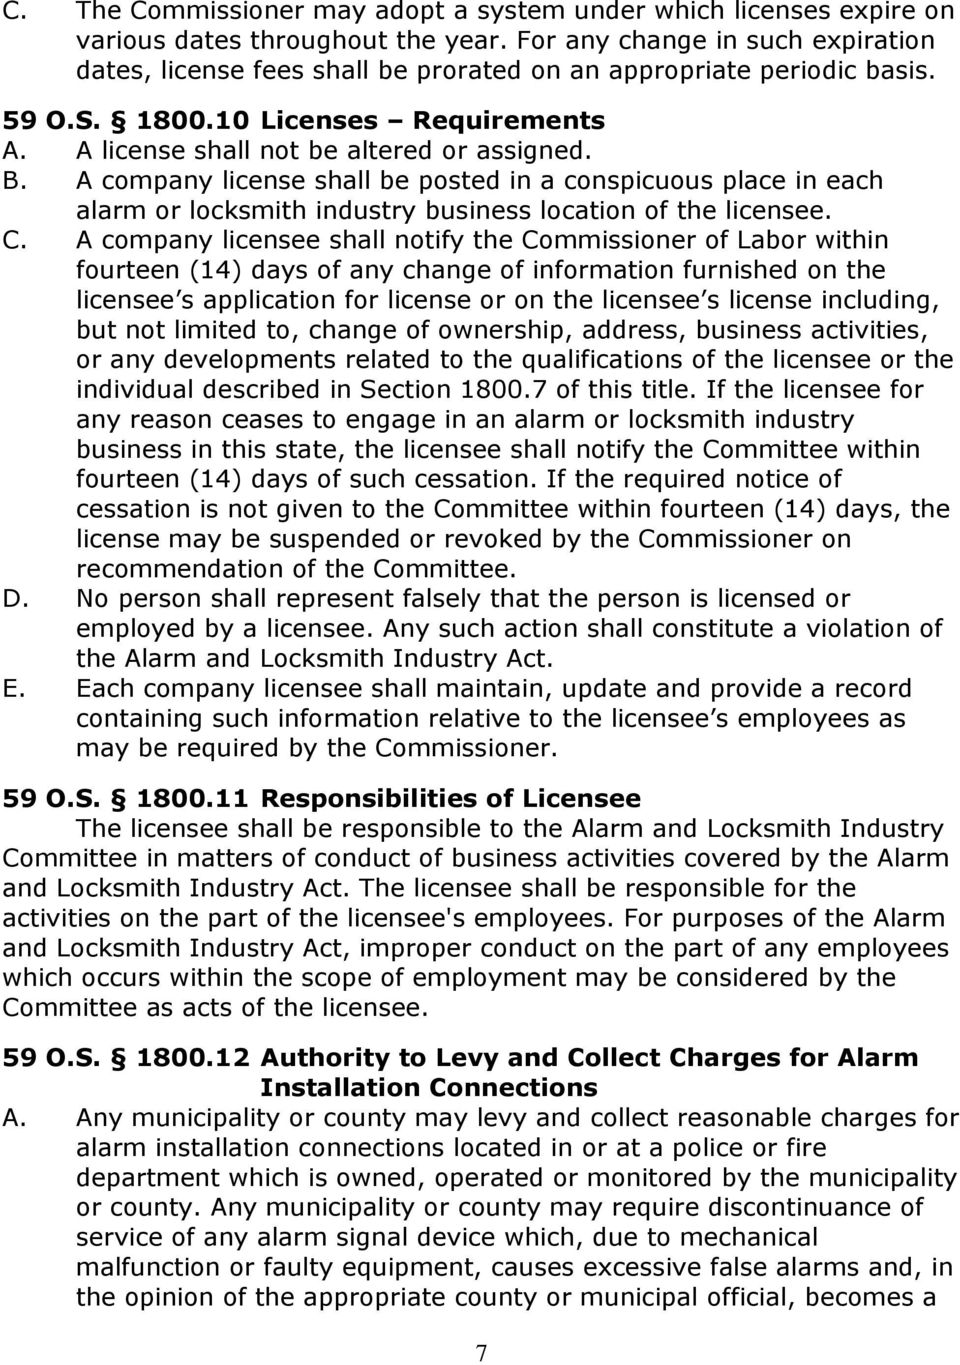 A company license shall be posted in a conspicuous place in each alarm or locksmith industry business location of the licensee. C.